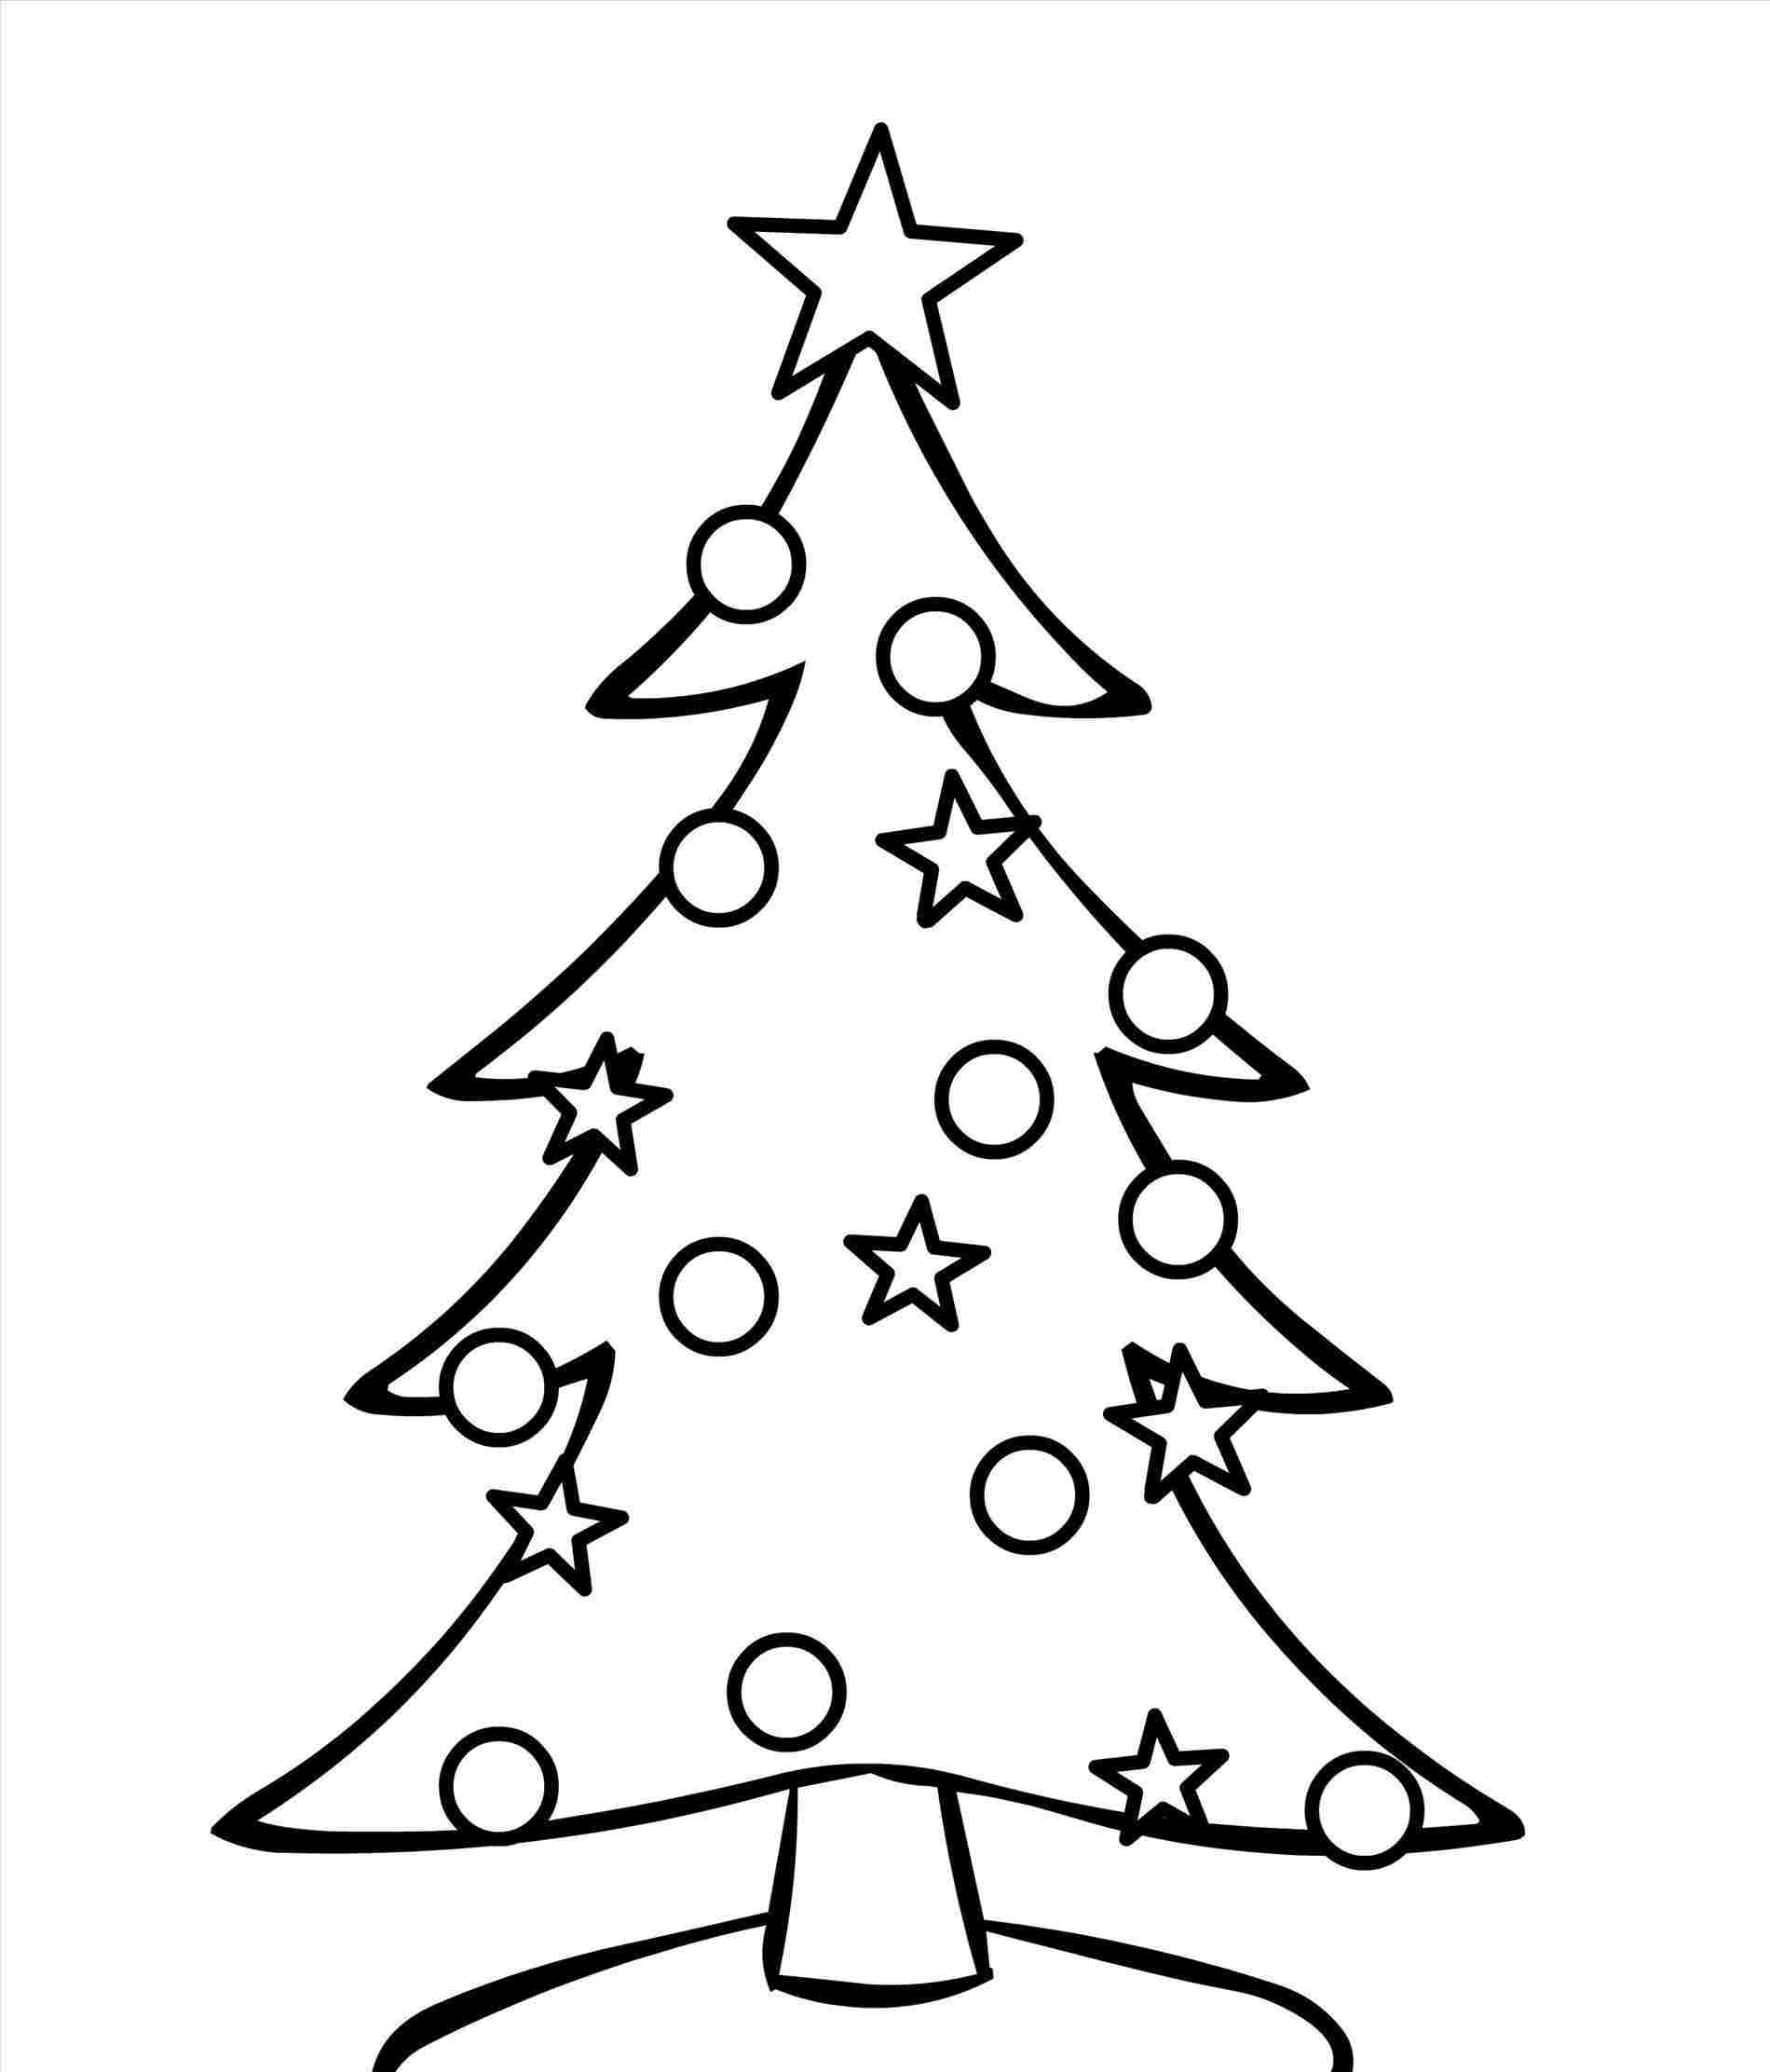 Christmas Tree Outline.Christmas Tree Drawing Outline Free Download Best